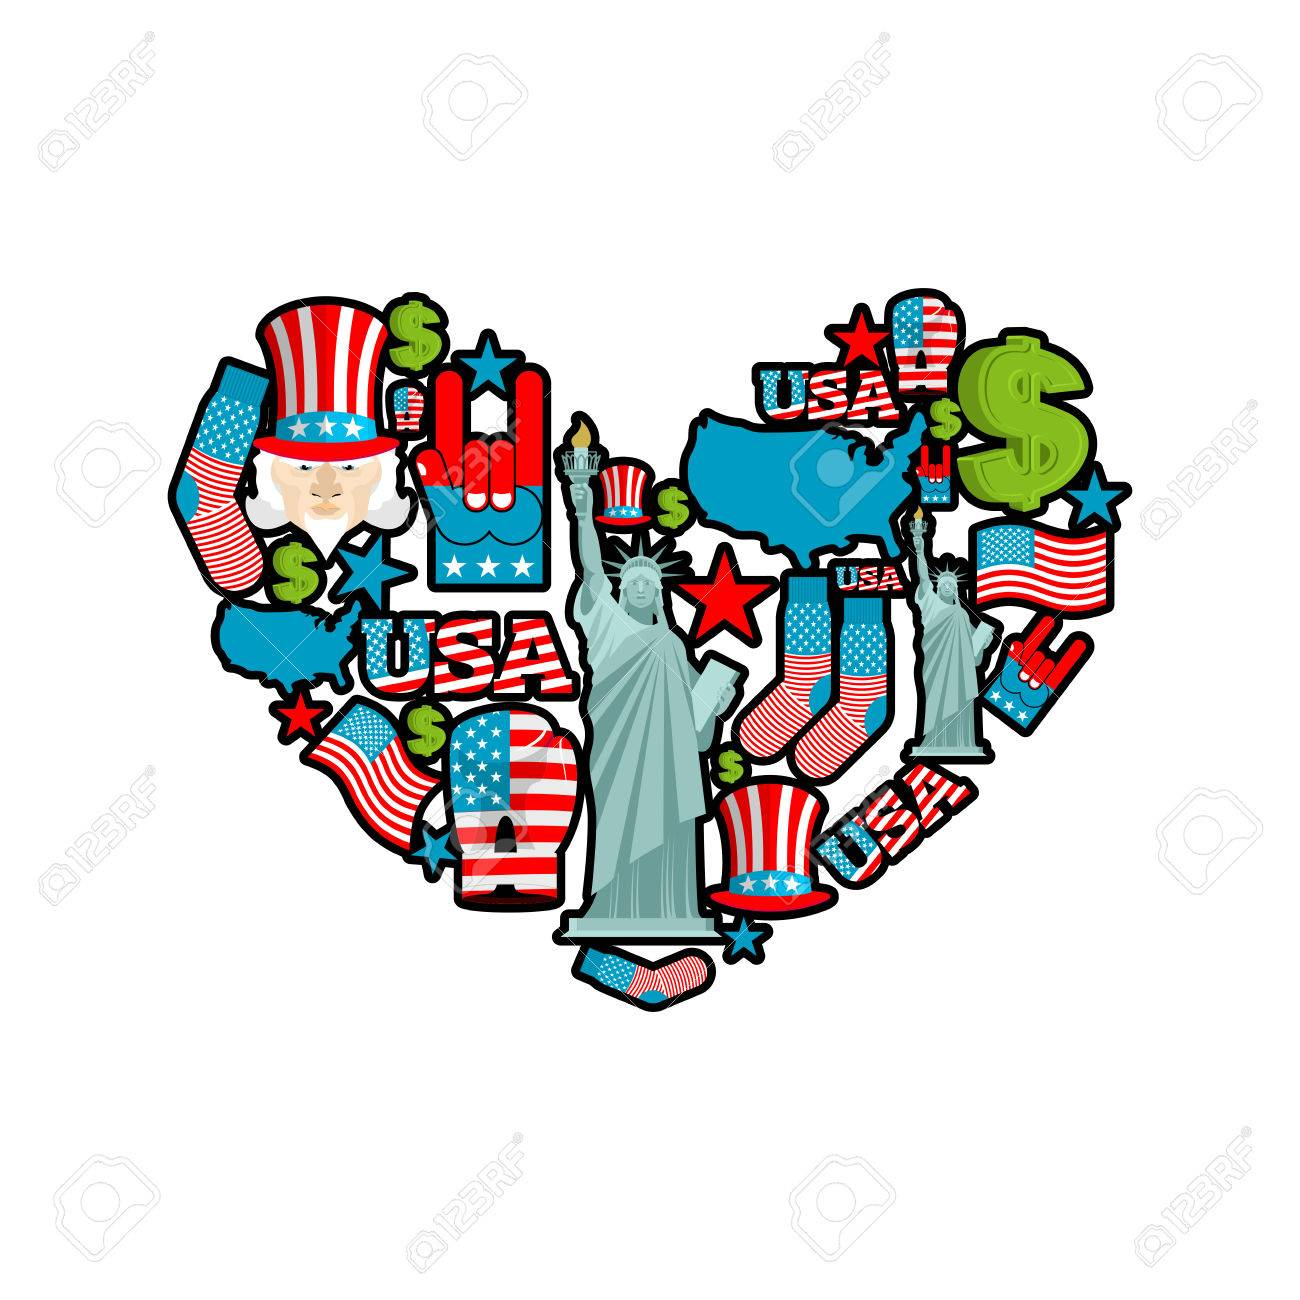 Usa love sign heart of united states traditional folk characters usa love sign heart of united states traditional folk characters map and flag of biocorpaavc Choice Image